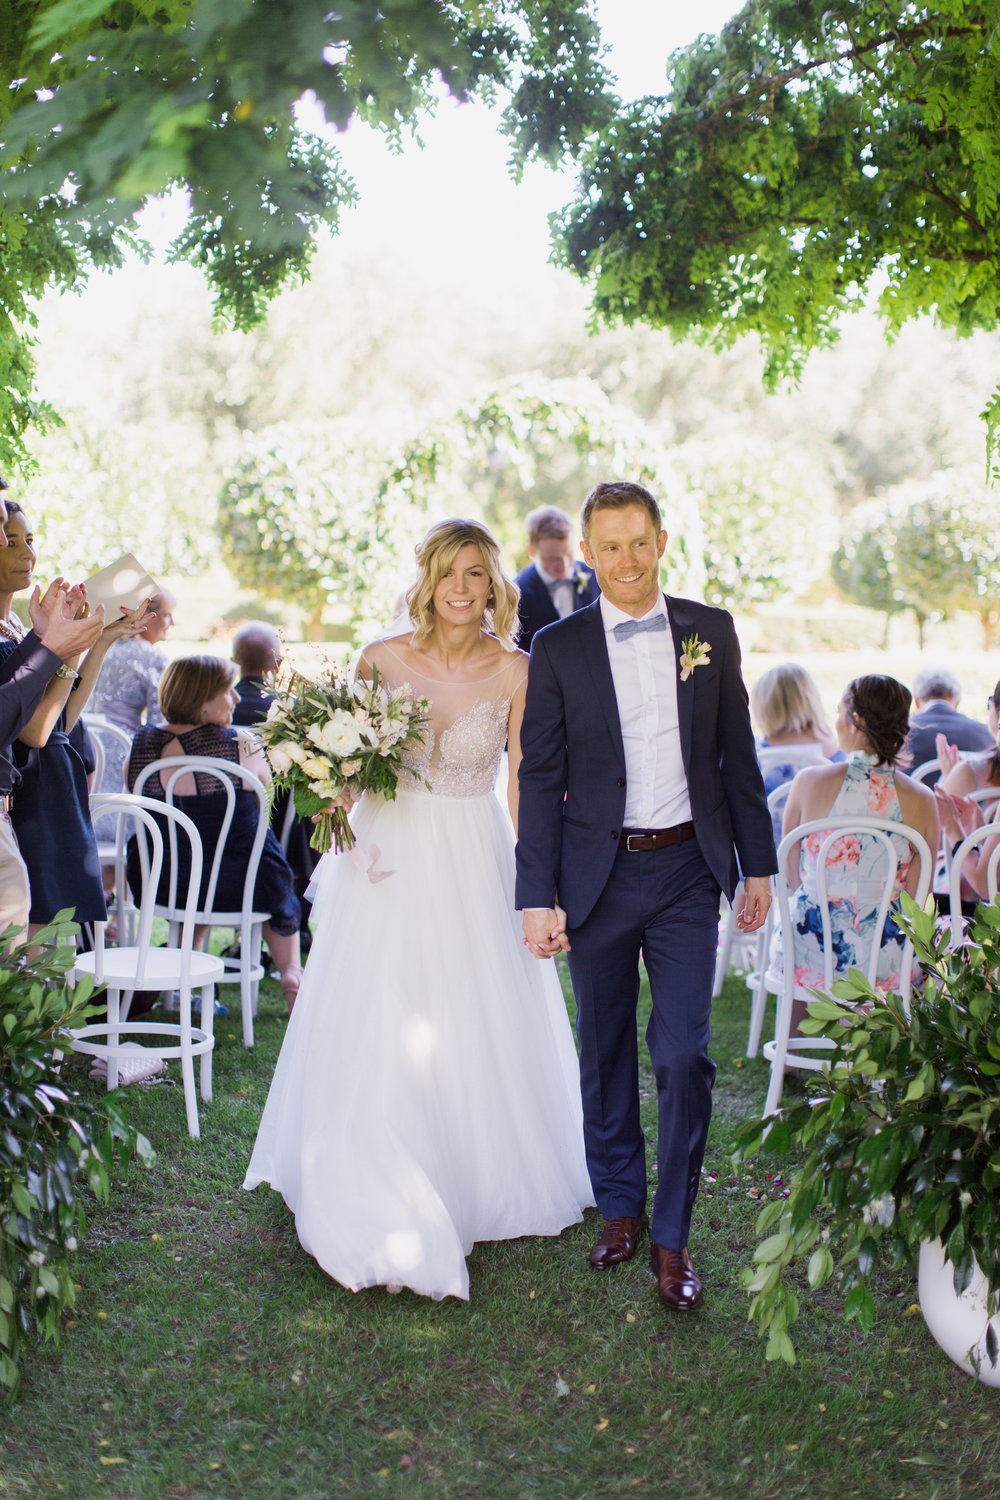 Aravella Event Design | Tree Elle Retreat Wedding | Photo by Jemma Keech Photography